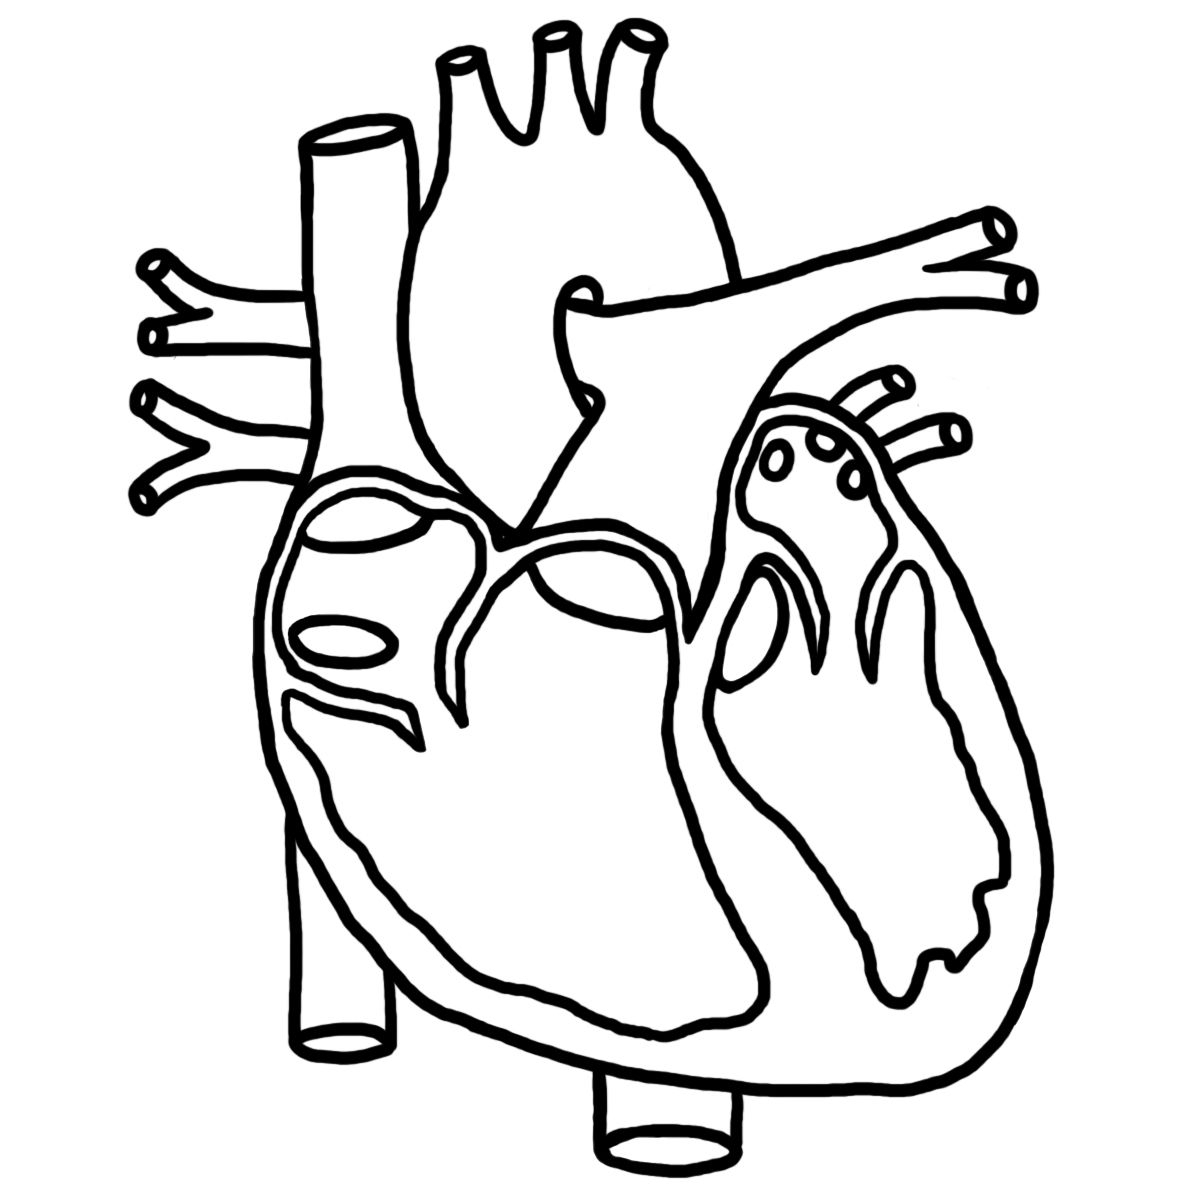 1200x1200 Diagram Of Human Heart Without Labels Diagram Of Human Heart